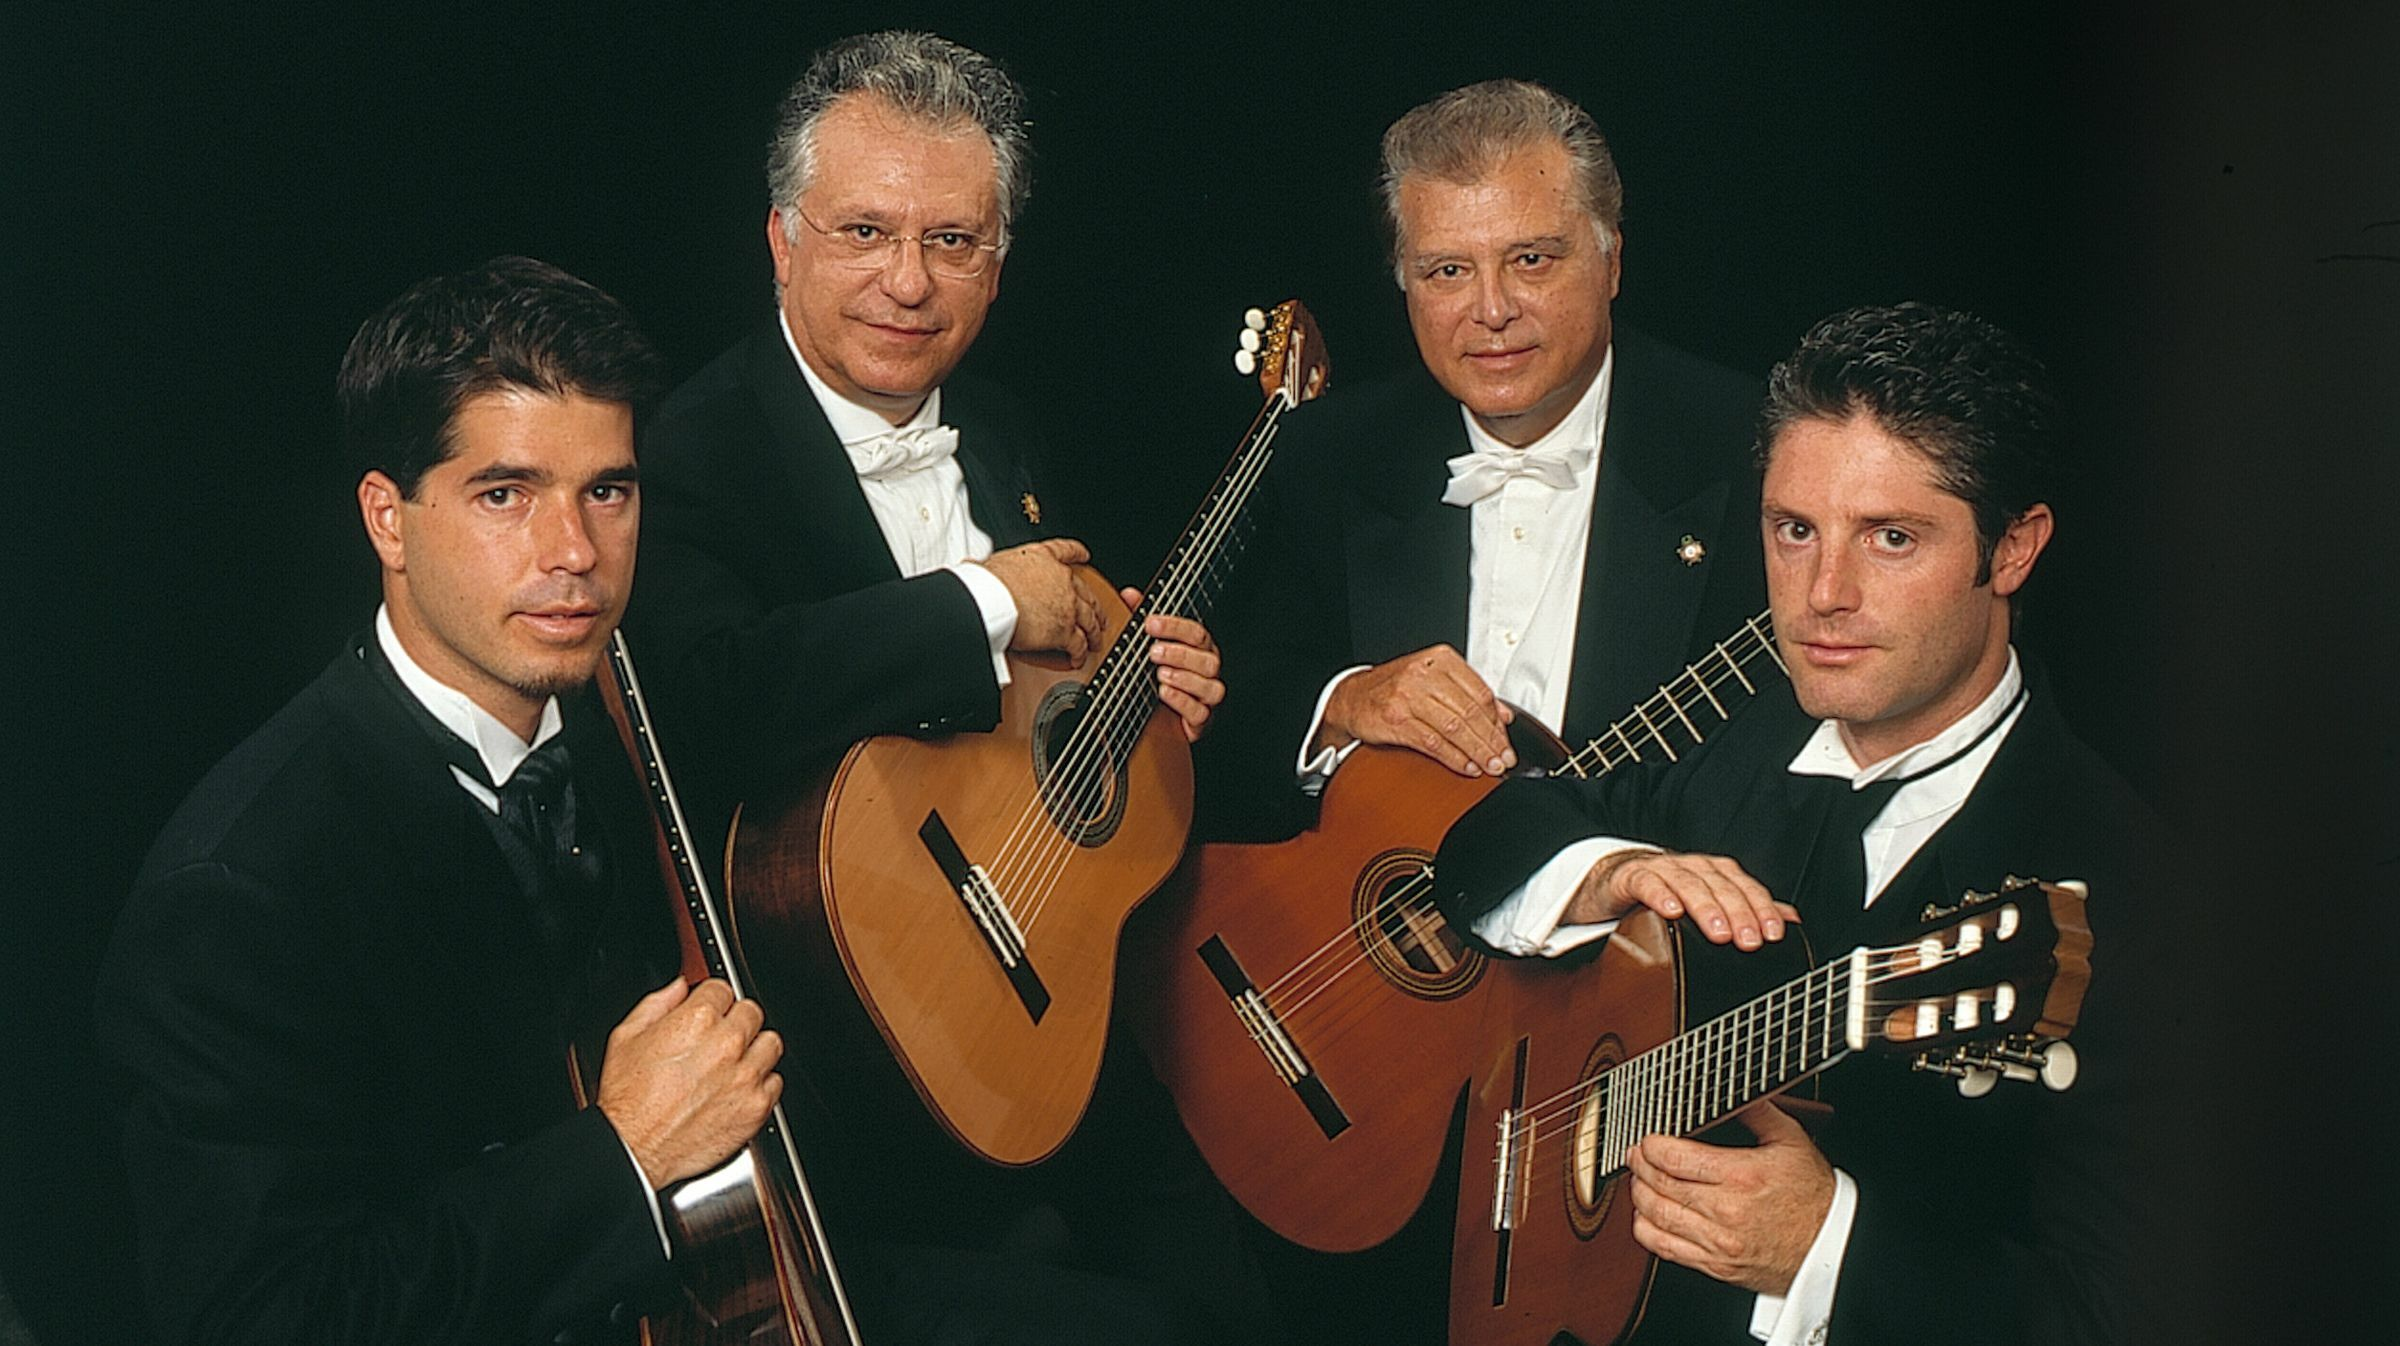 The Romeros: The Royal Family of Classical Guitar